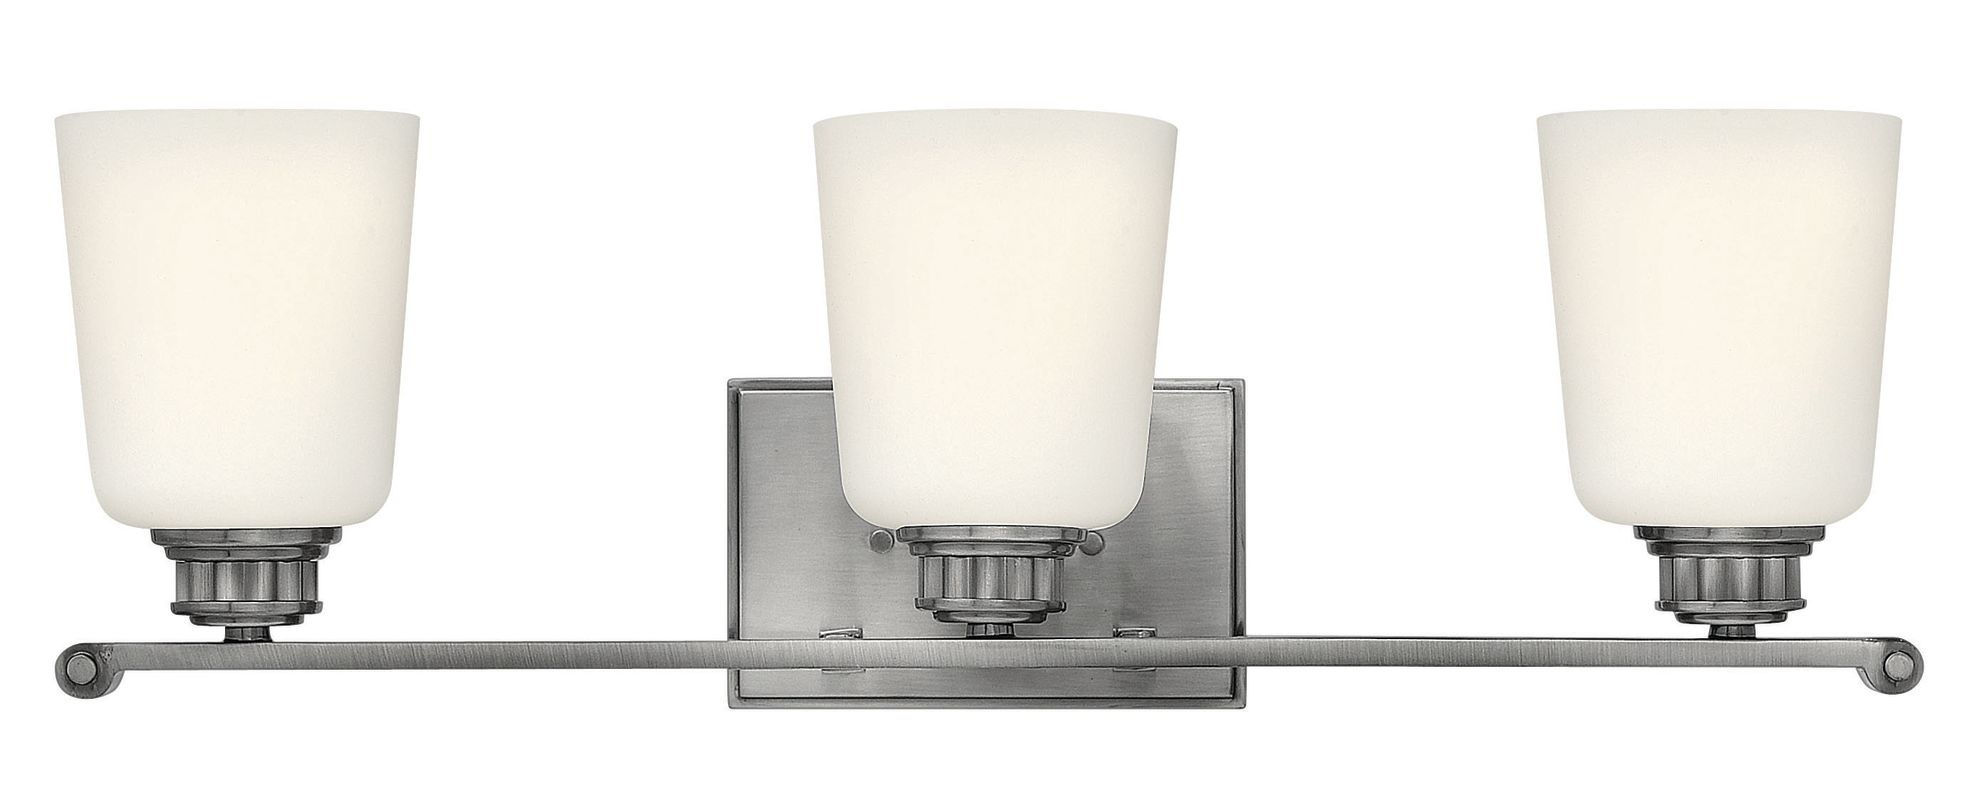 Bathroom Vanity Lights With Clear Glass Shades : Hinkley Lighting 53323PL Polished Antique Nickel 3 Light Bathroom Vanity Light with Frosted ...